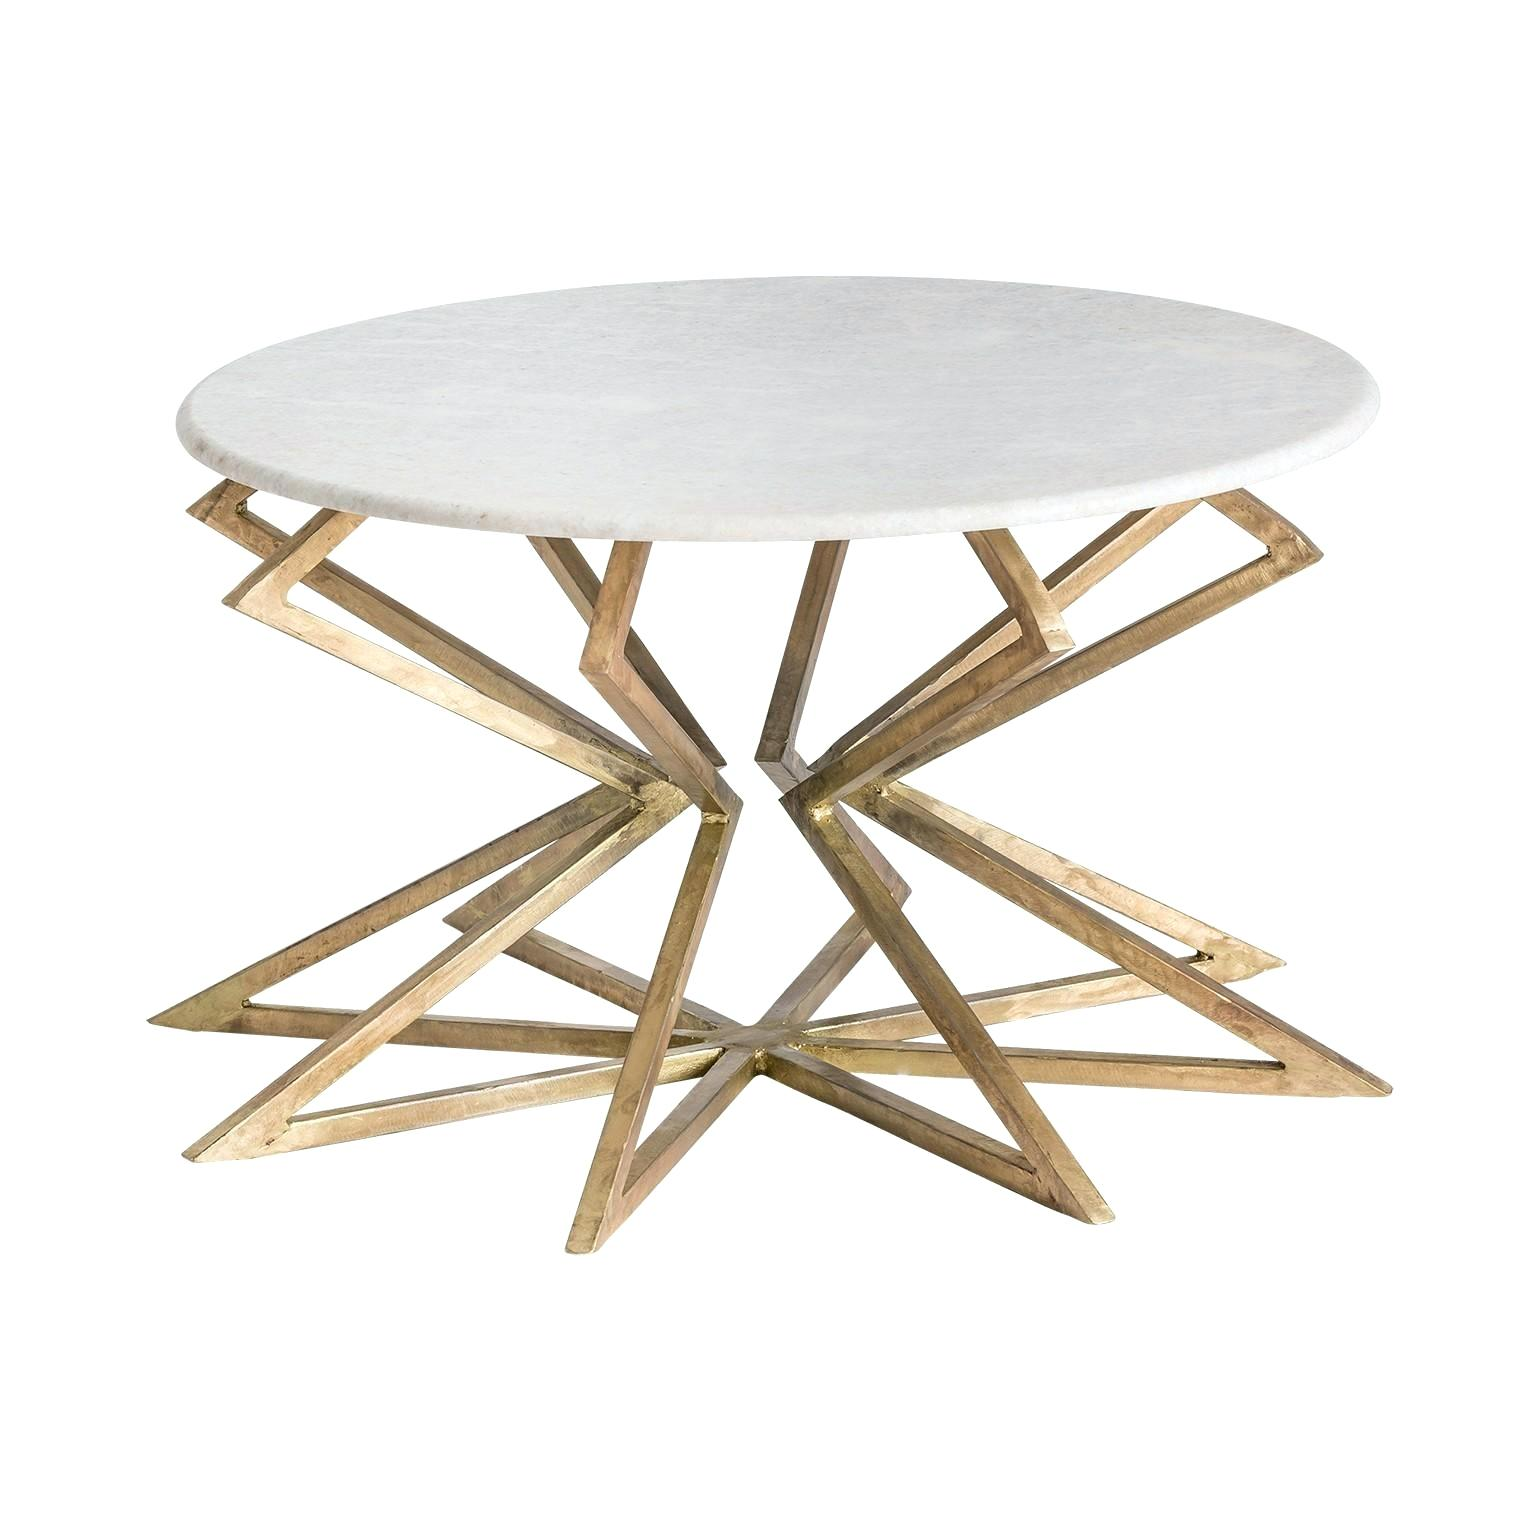 end table gold metal hexagon living room tables hammered coffee gilded patina effect and white marble round for legs accent related post home furniture entryway storage